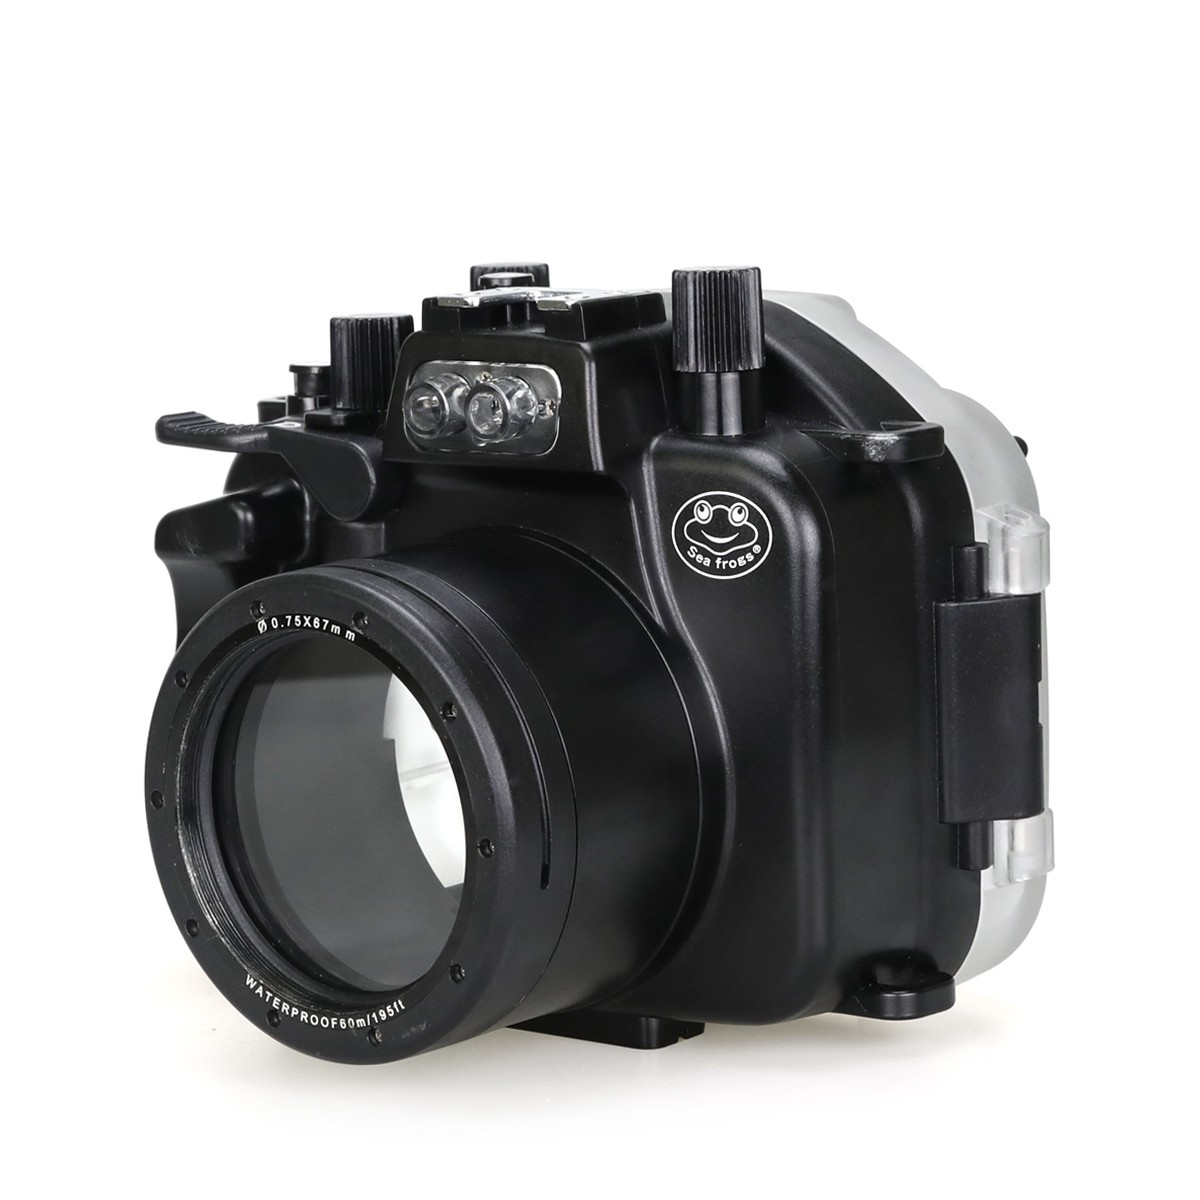 Meikon 40m/130ft Underwater Camera Housing For Canon EOS M5 18-55mm Lens meikon 40m wp dc44 waterproof underwater housing case 40m 130ft for canon g1x camera 18 as wp dc44